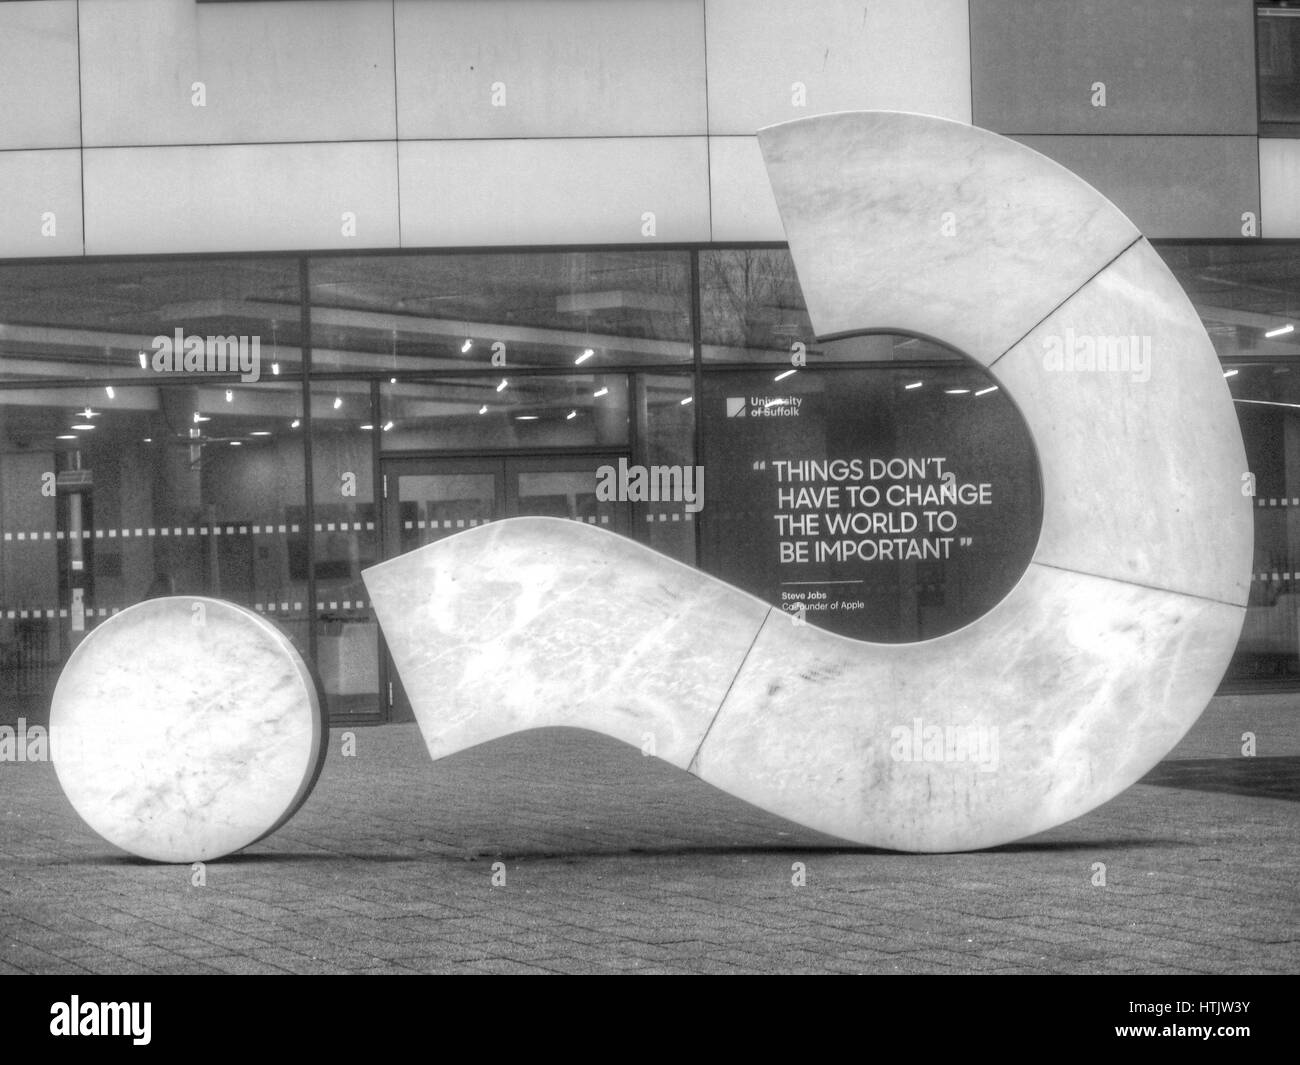 Question Mark Sculpture, Ipswich town near waterfront, with 'Things Don't Have to Change the World to be - Stock Image